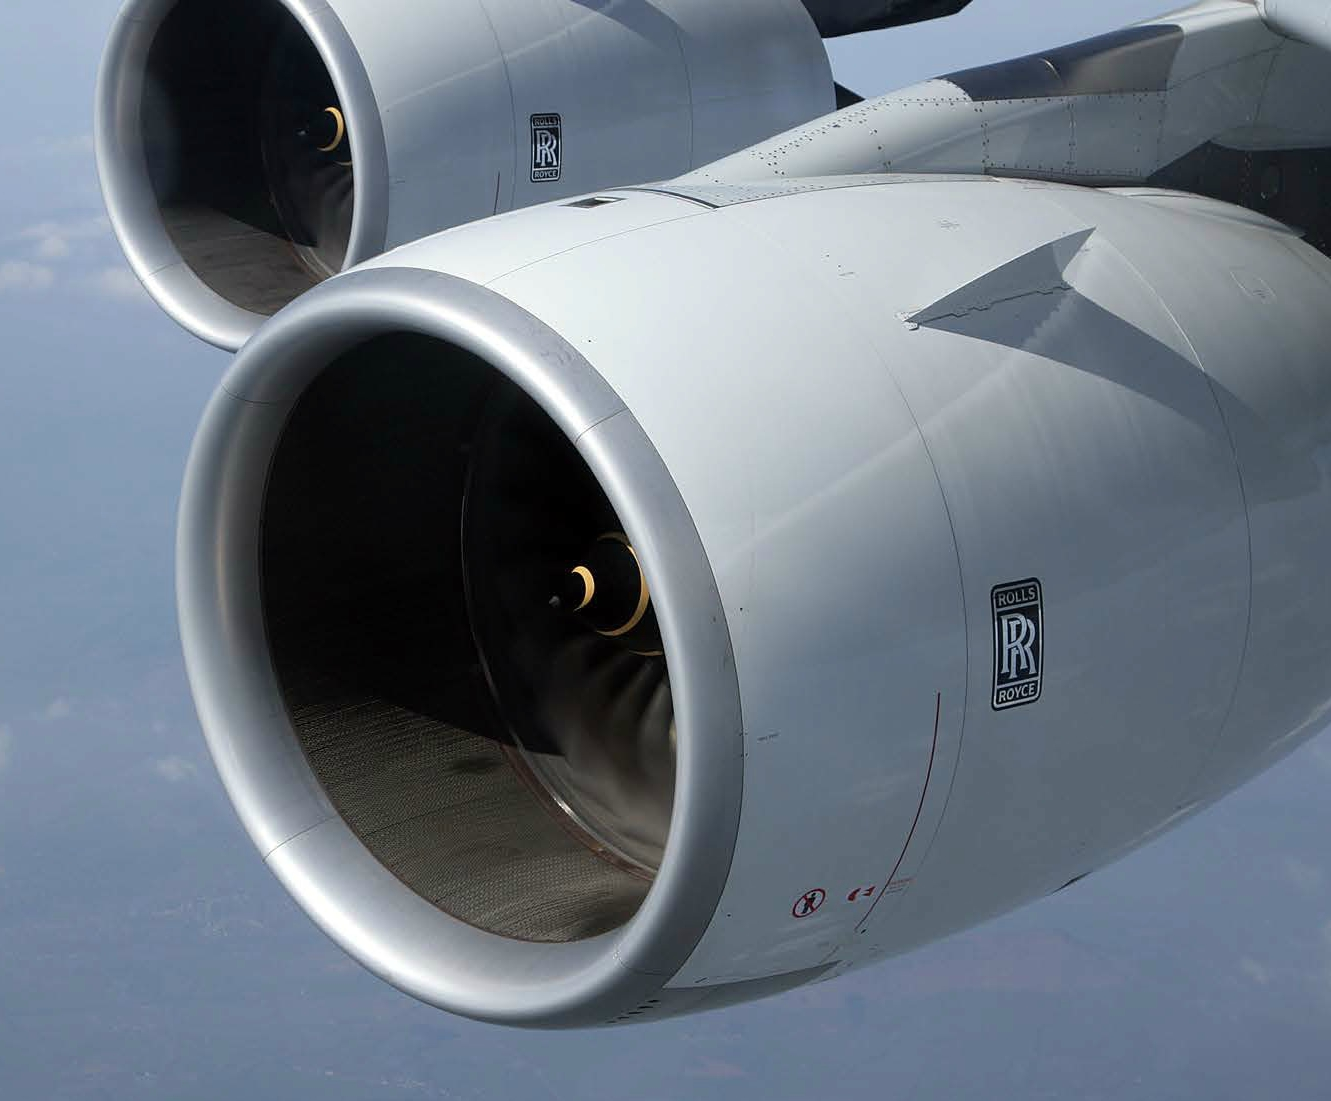 Rolls-Royce's TotalCare package provides a'power by the hour' service that emphasises engine reliability and efficiency. [Trent 900 powering an Airbus A380 – image courtesy of Rolls-Royce plc]